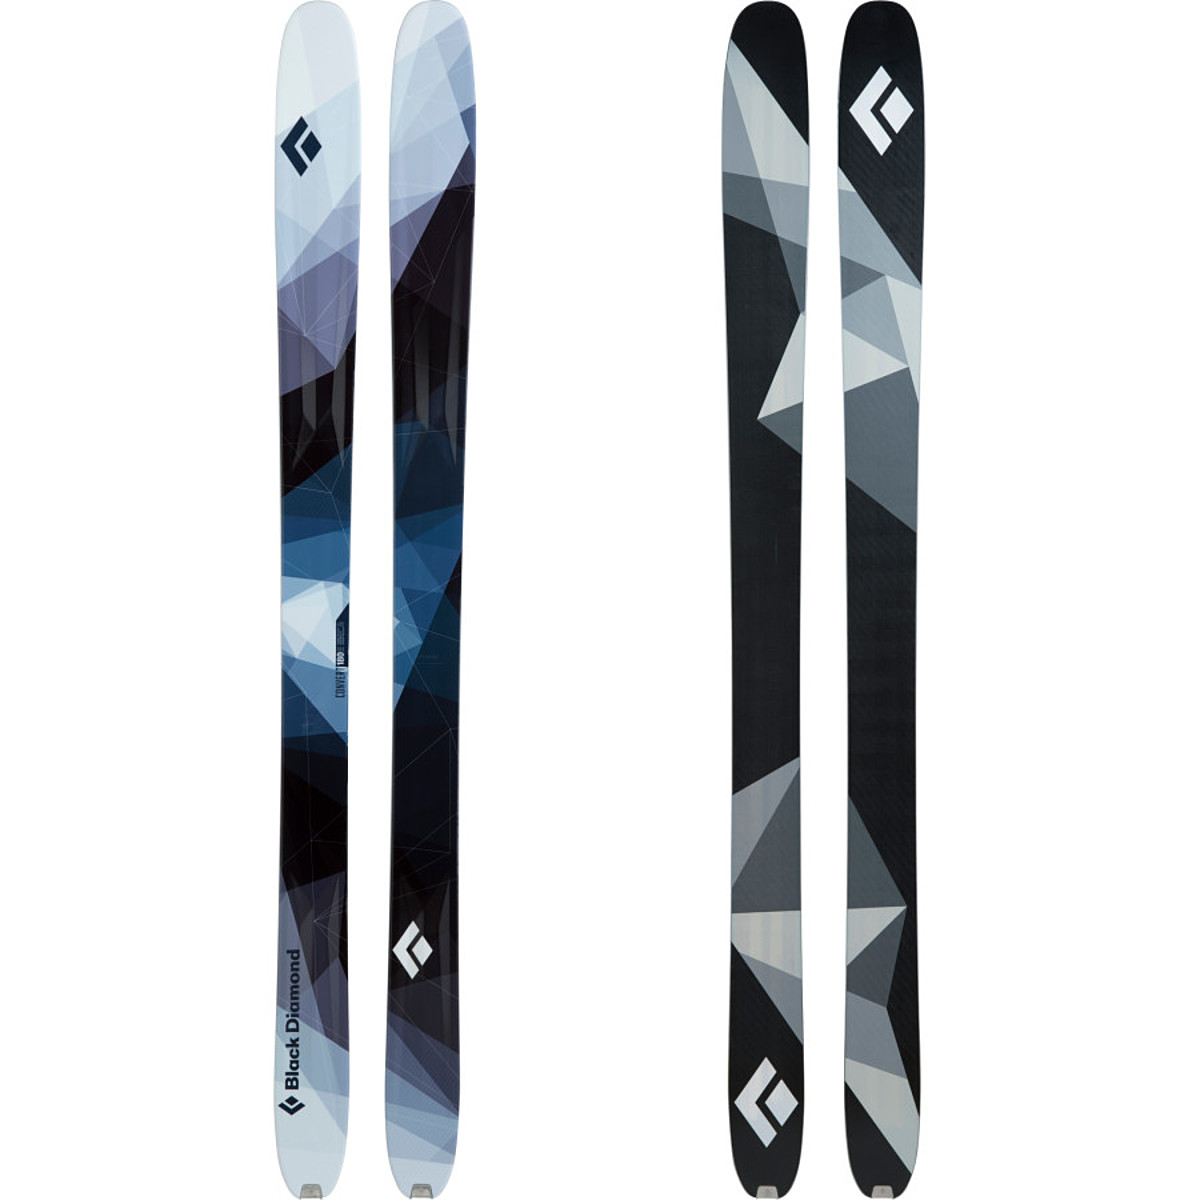 Black Diamond Convert Ski